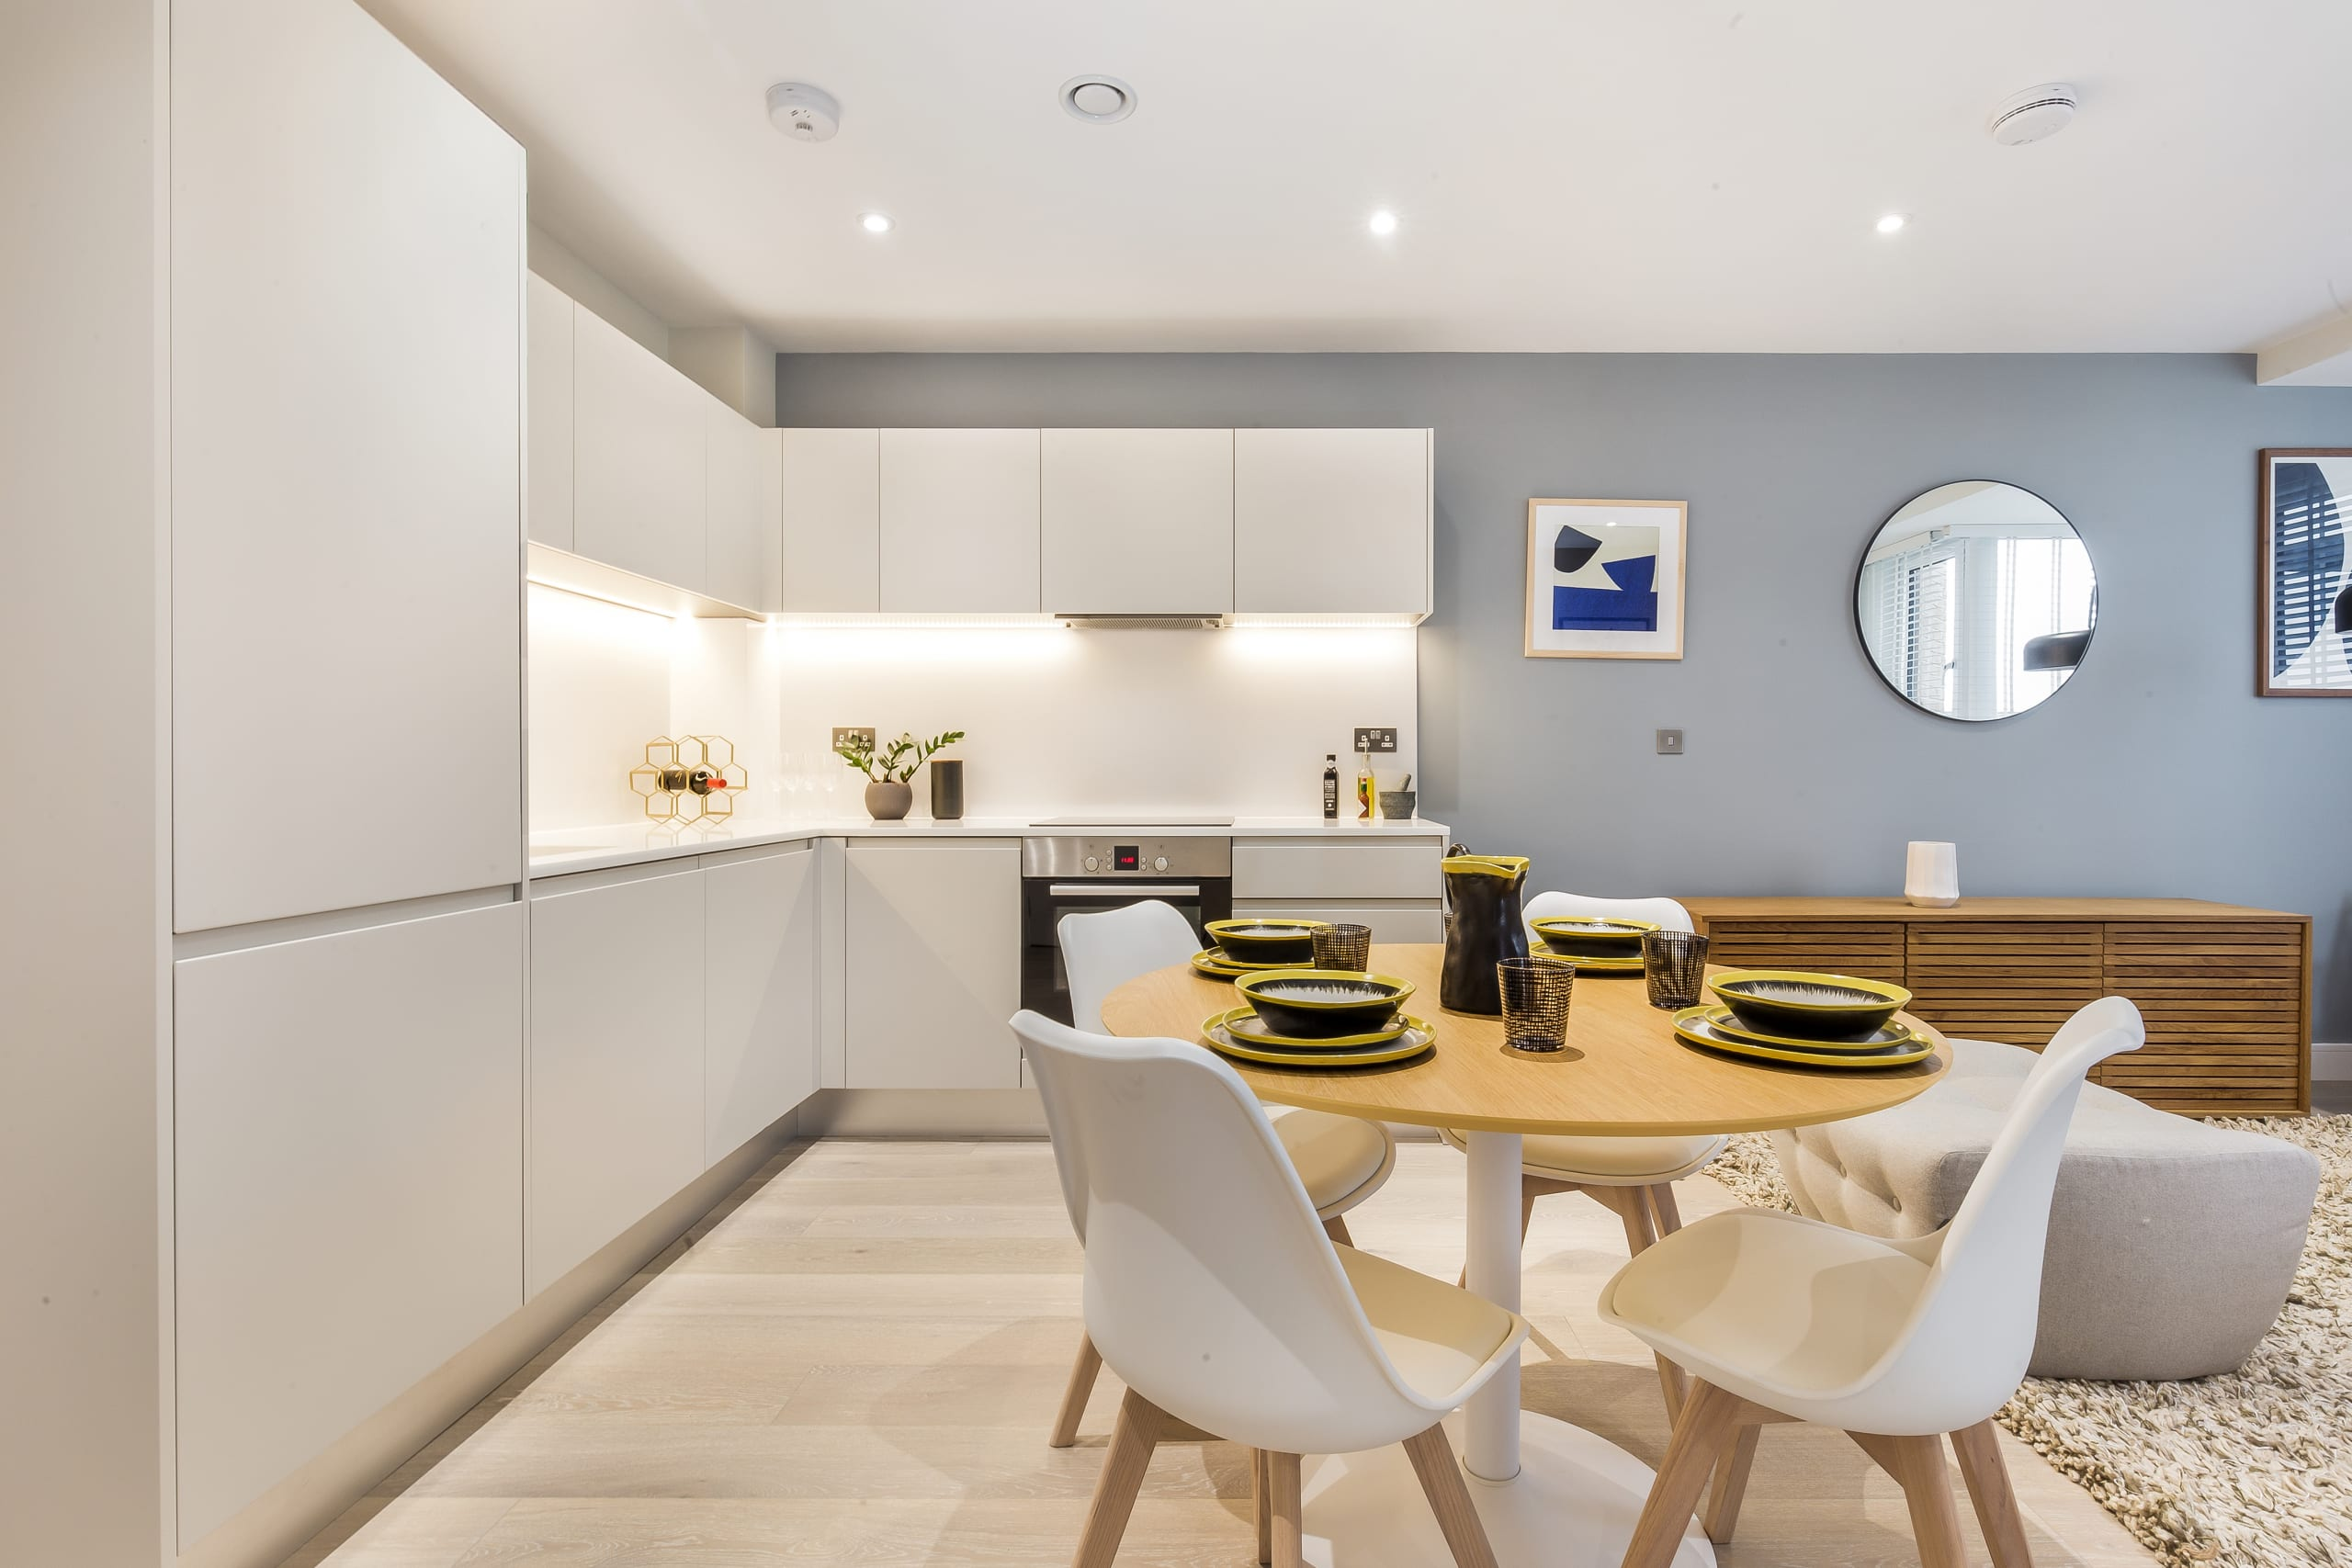 White kitchen and dining table with white chairs